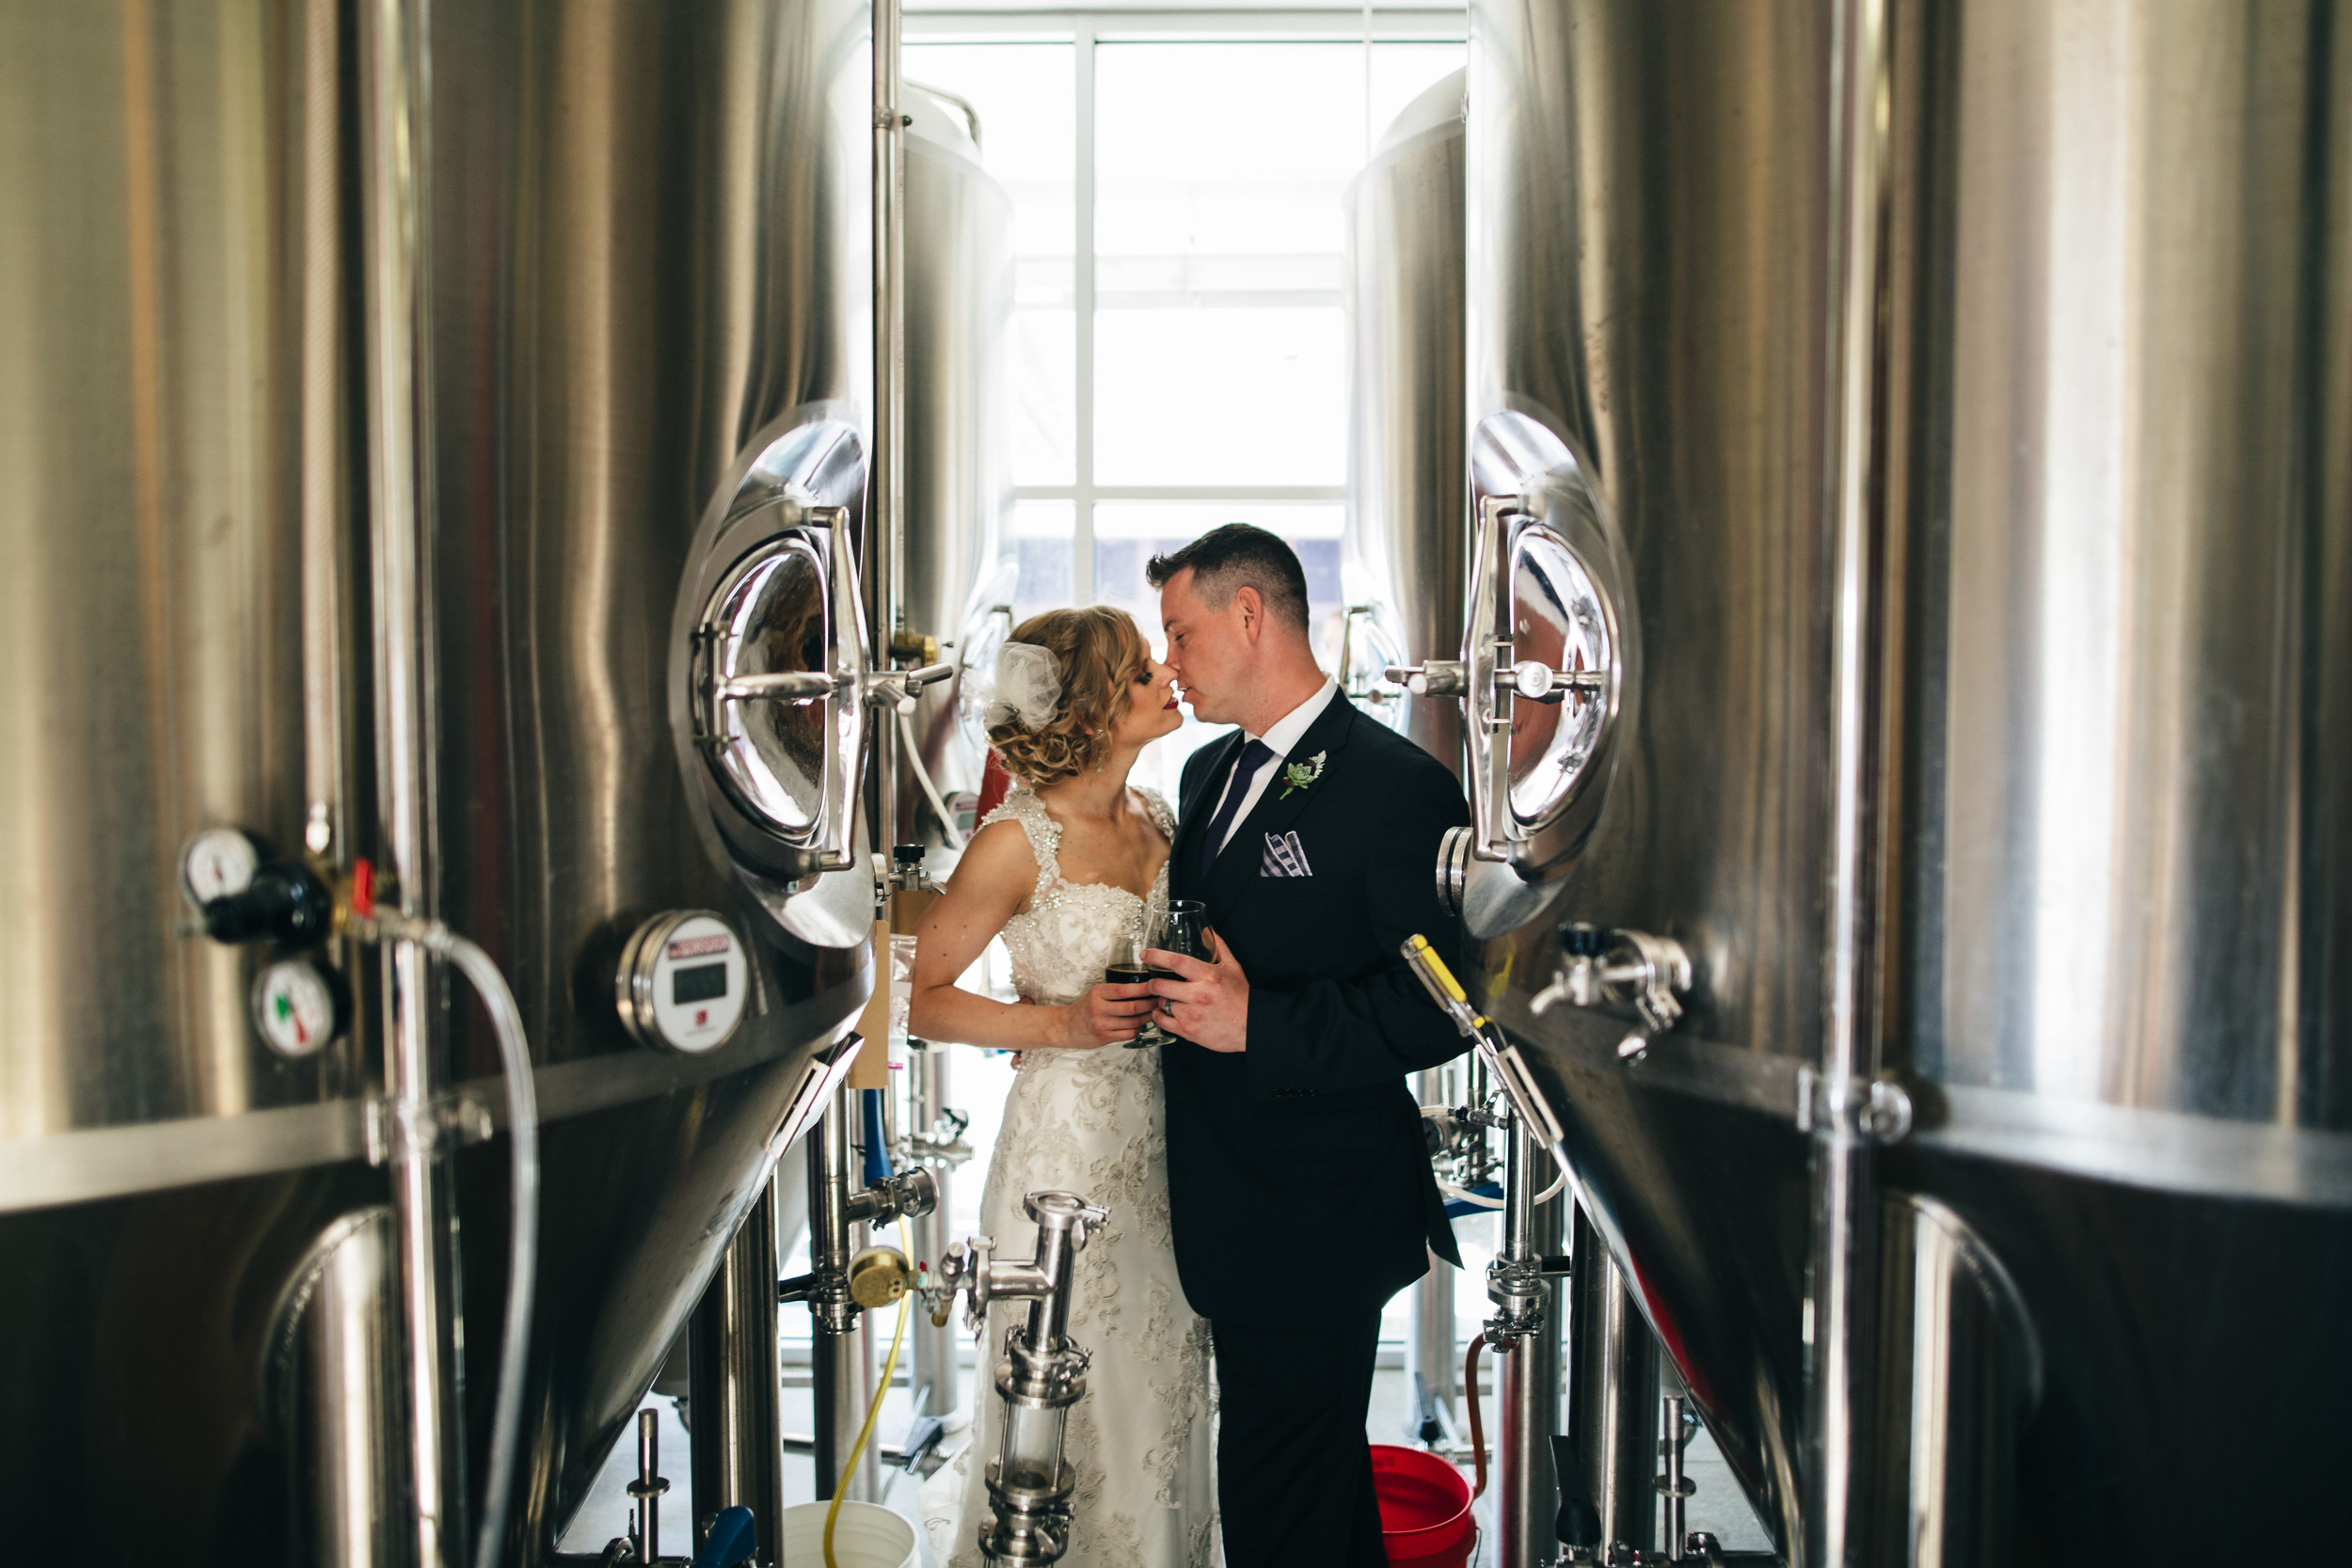 Wedding photography in brewery at Catawba Island Brewery.